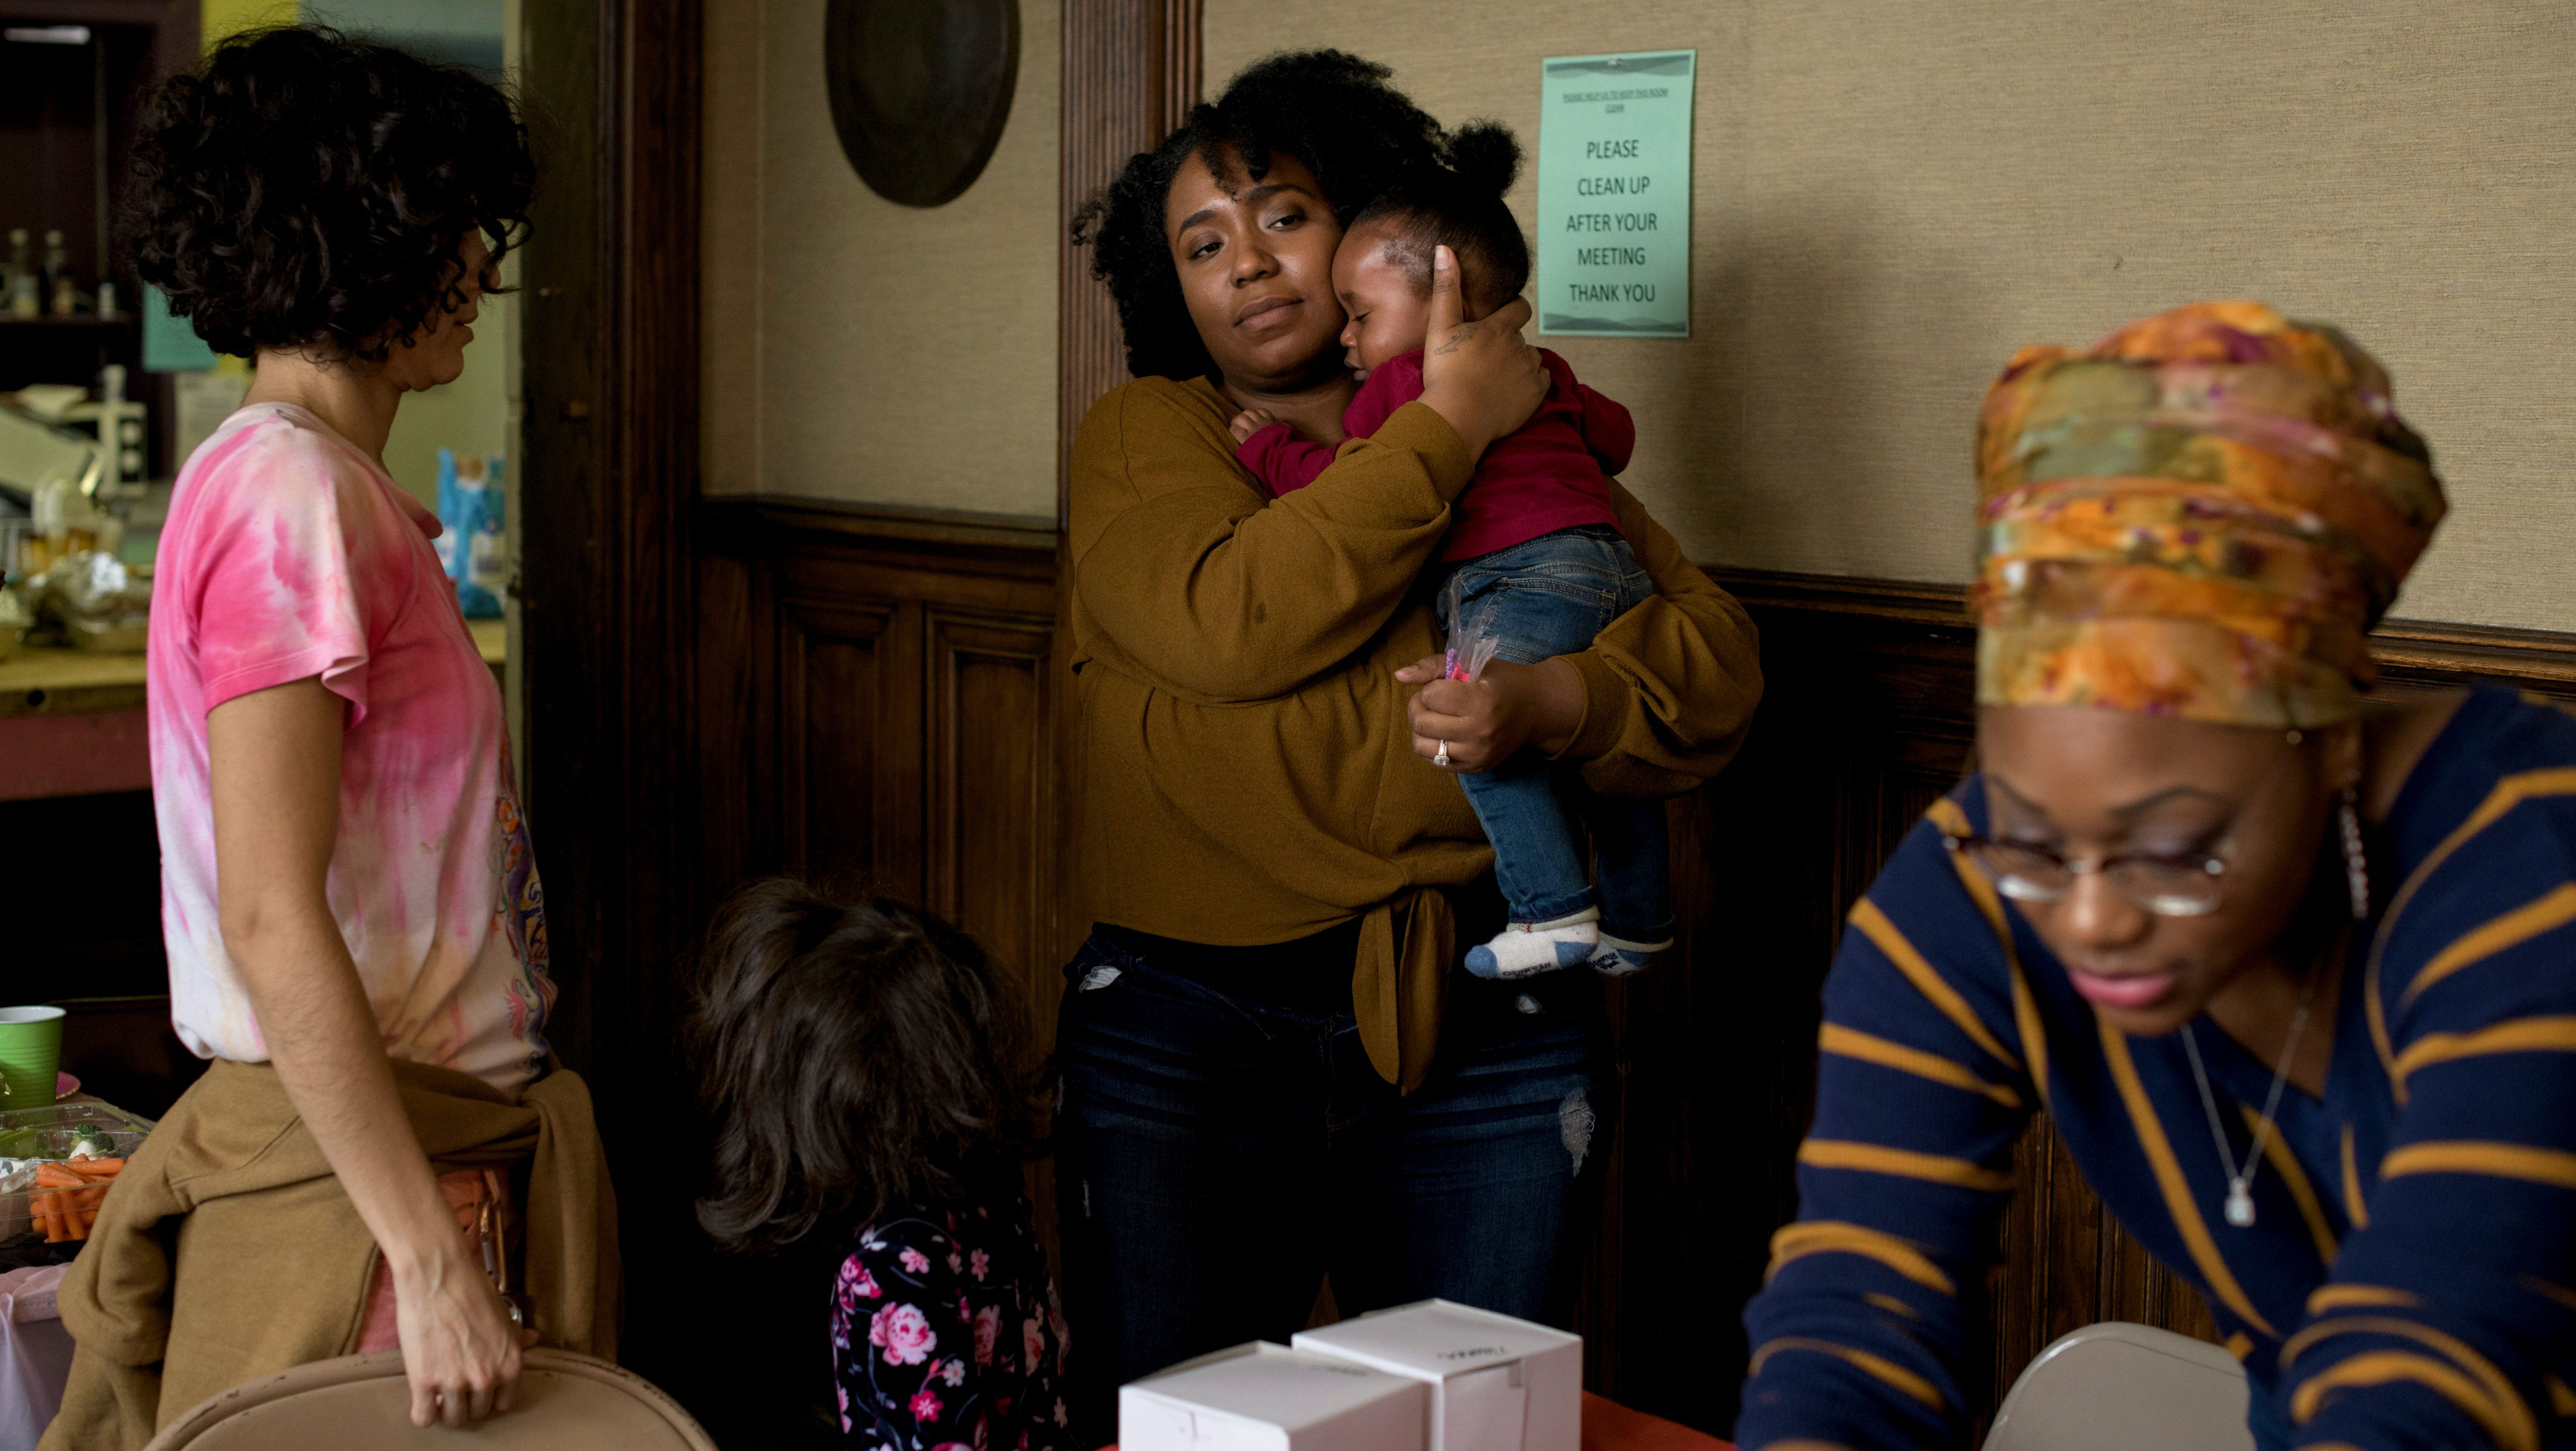 Siwatu-Salama Ra, 27, holds her 10-month-old son Zakai during her daughter Zala's 4th birthday party at the Cass Commons, the site of Siwatu's work, in Detroit, Mich., on March 24, 2019.